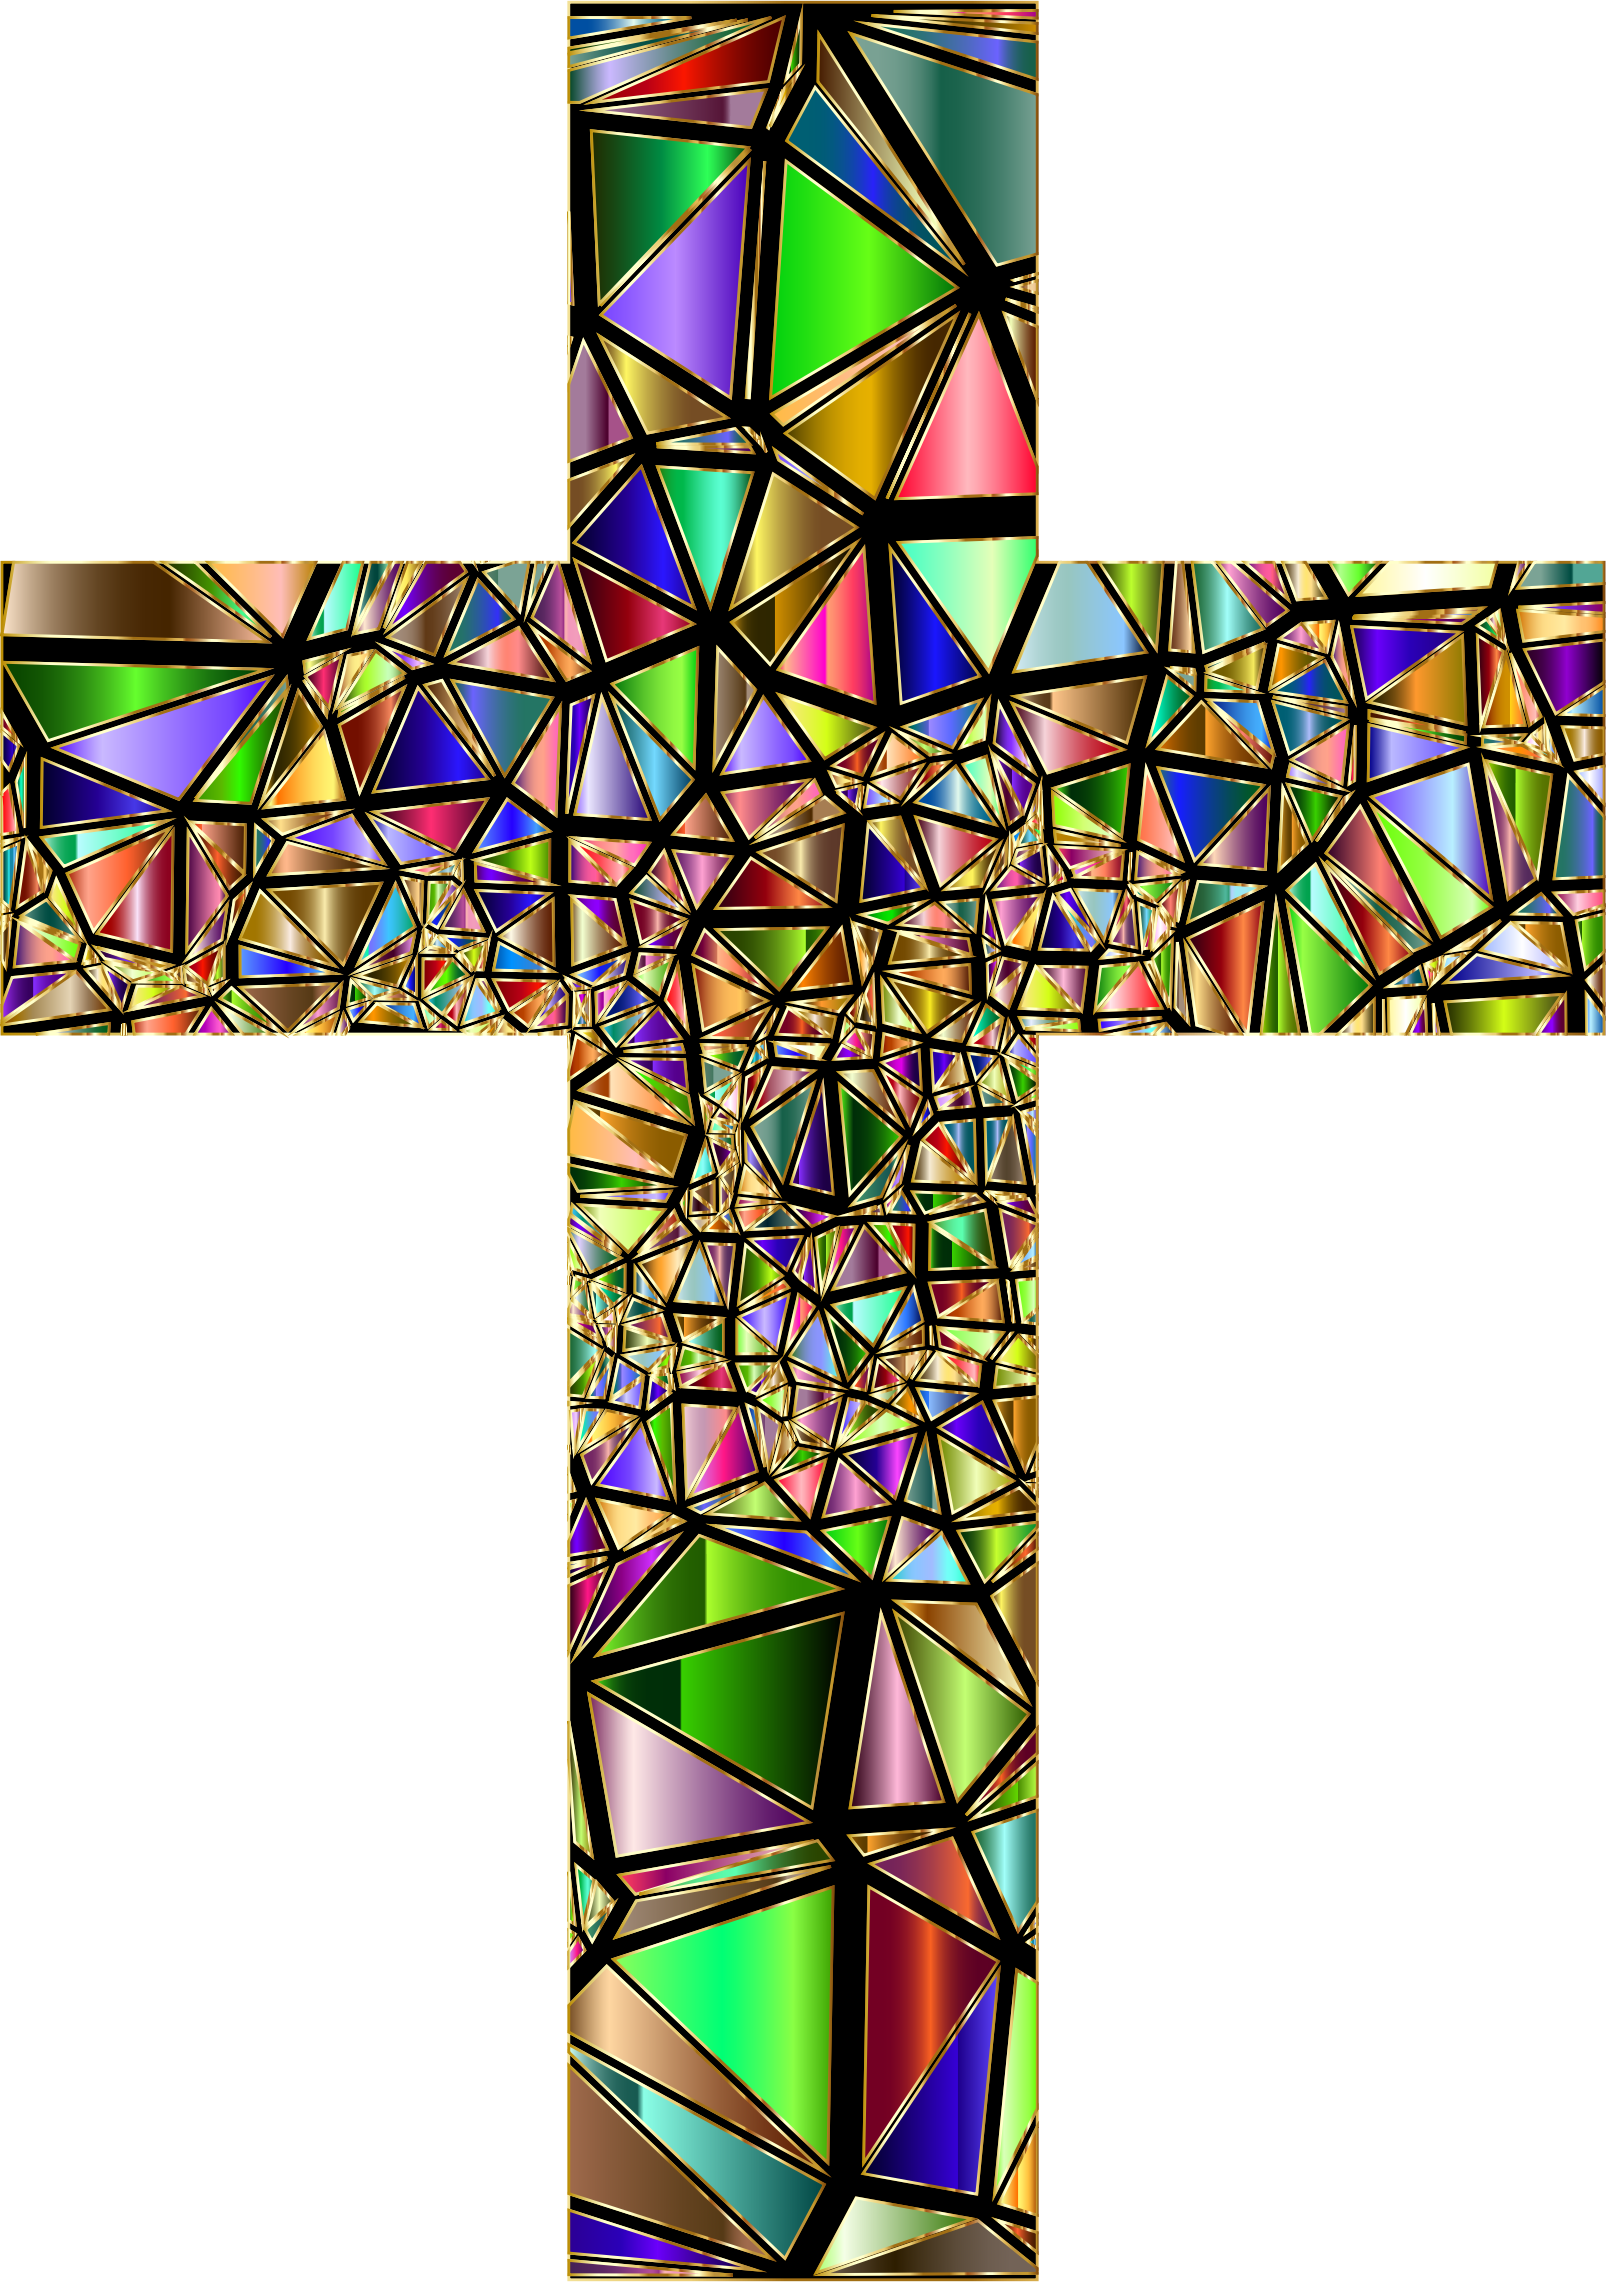 Low Poly Stained Glass Cross 5 Variation 2 by GDJ